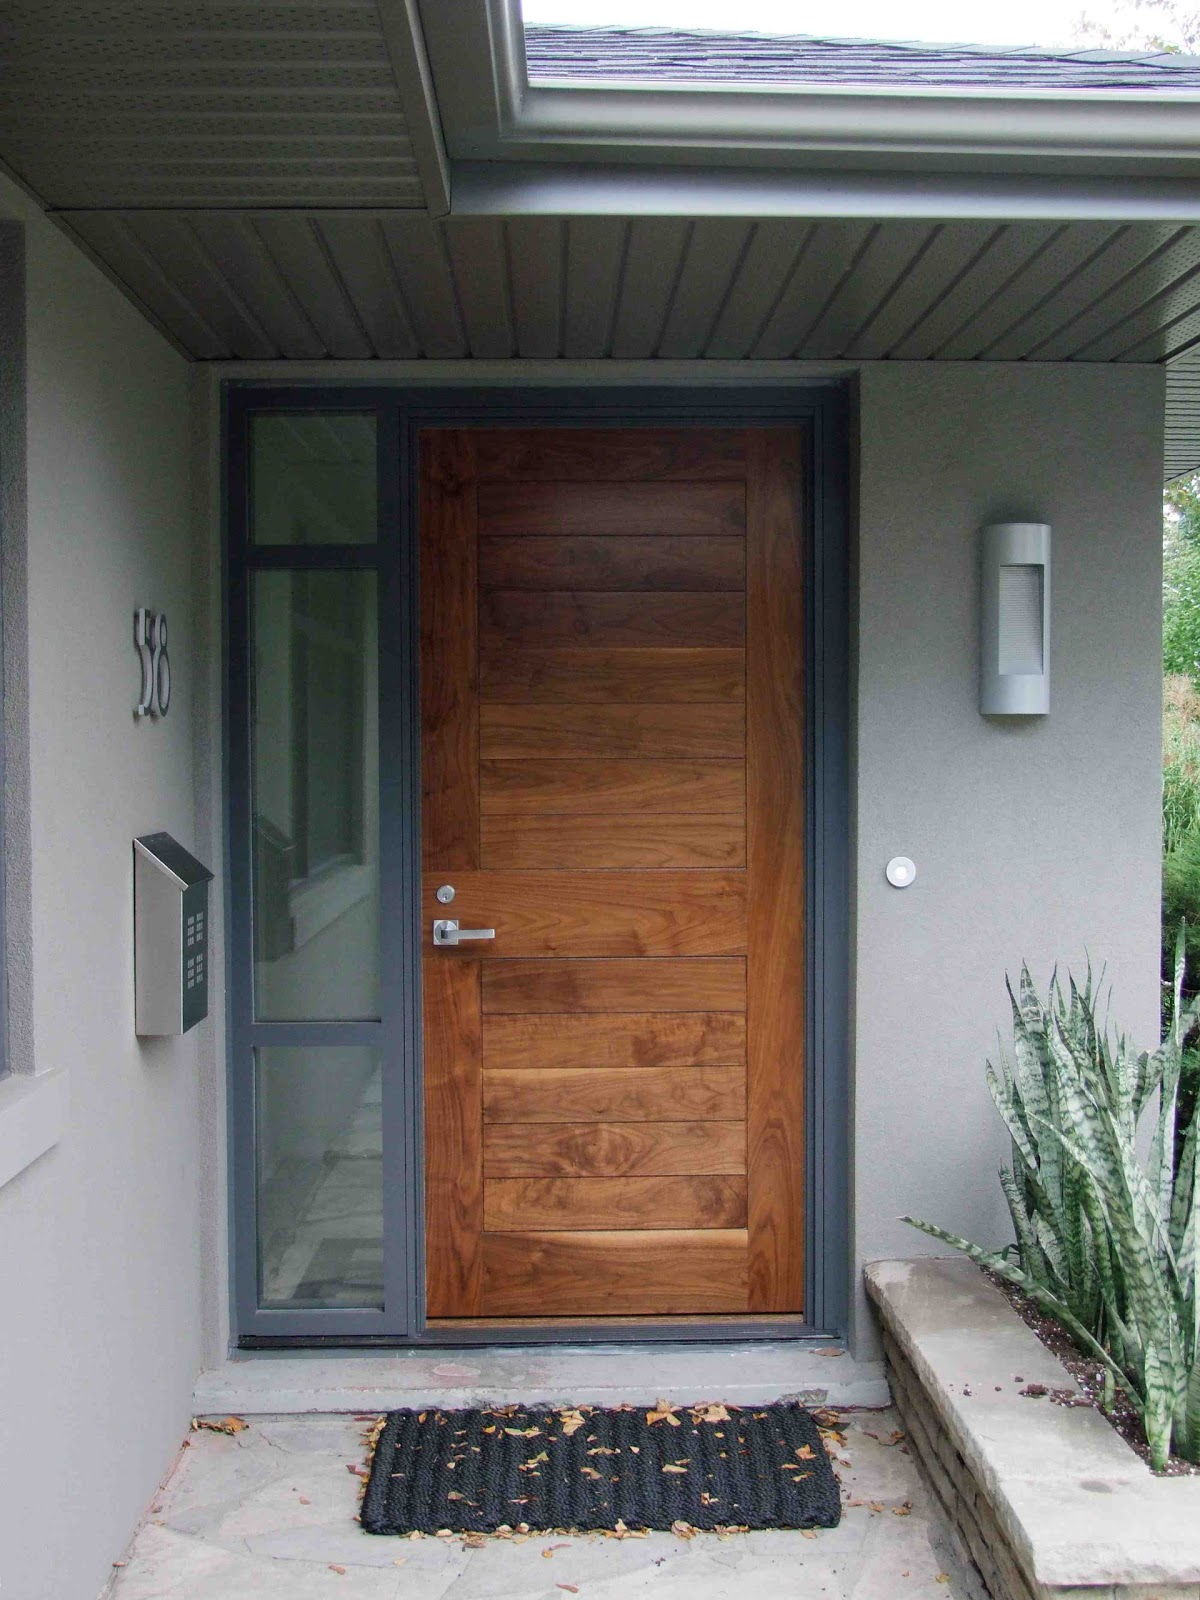 Creed 70 39 s bungalow makes a modern impression for Large entry door